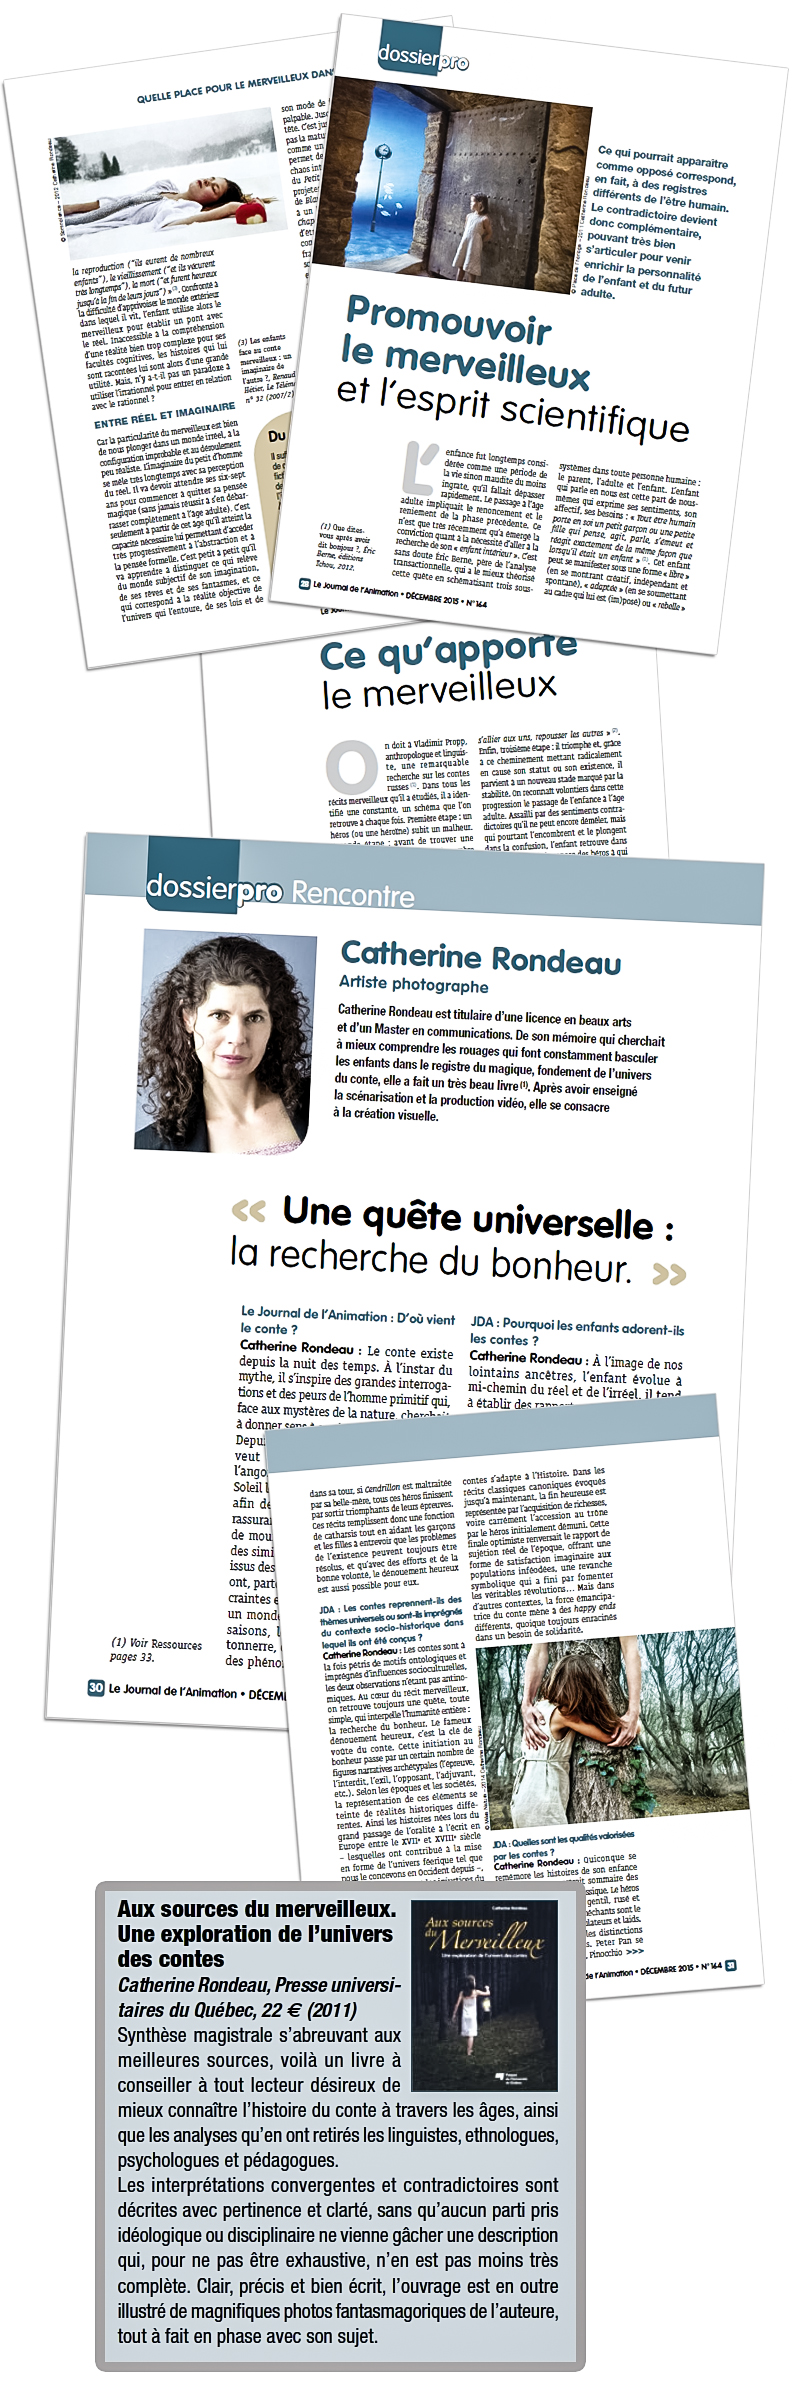 Montaga du Journal de l'animation avec Catherine Rondeau